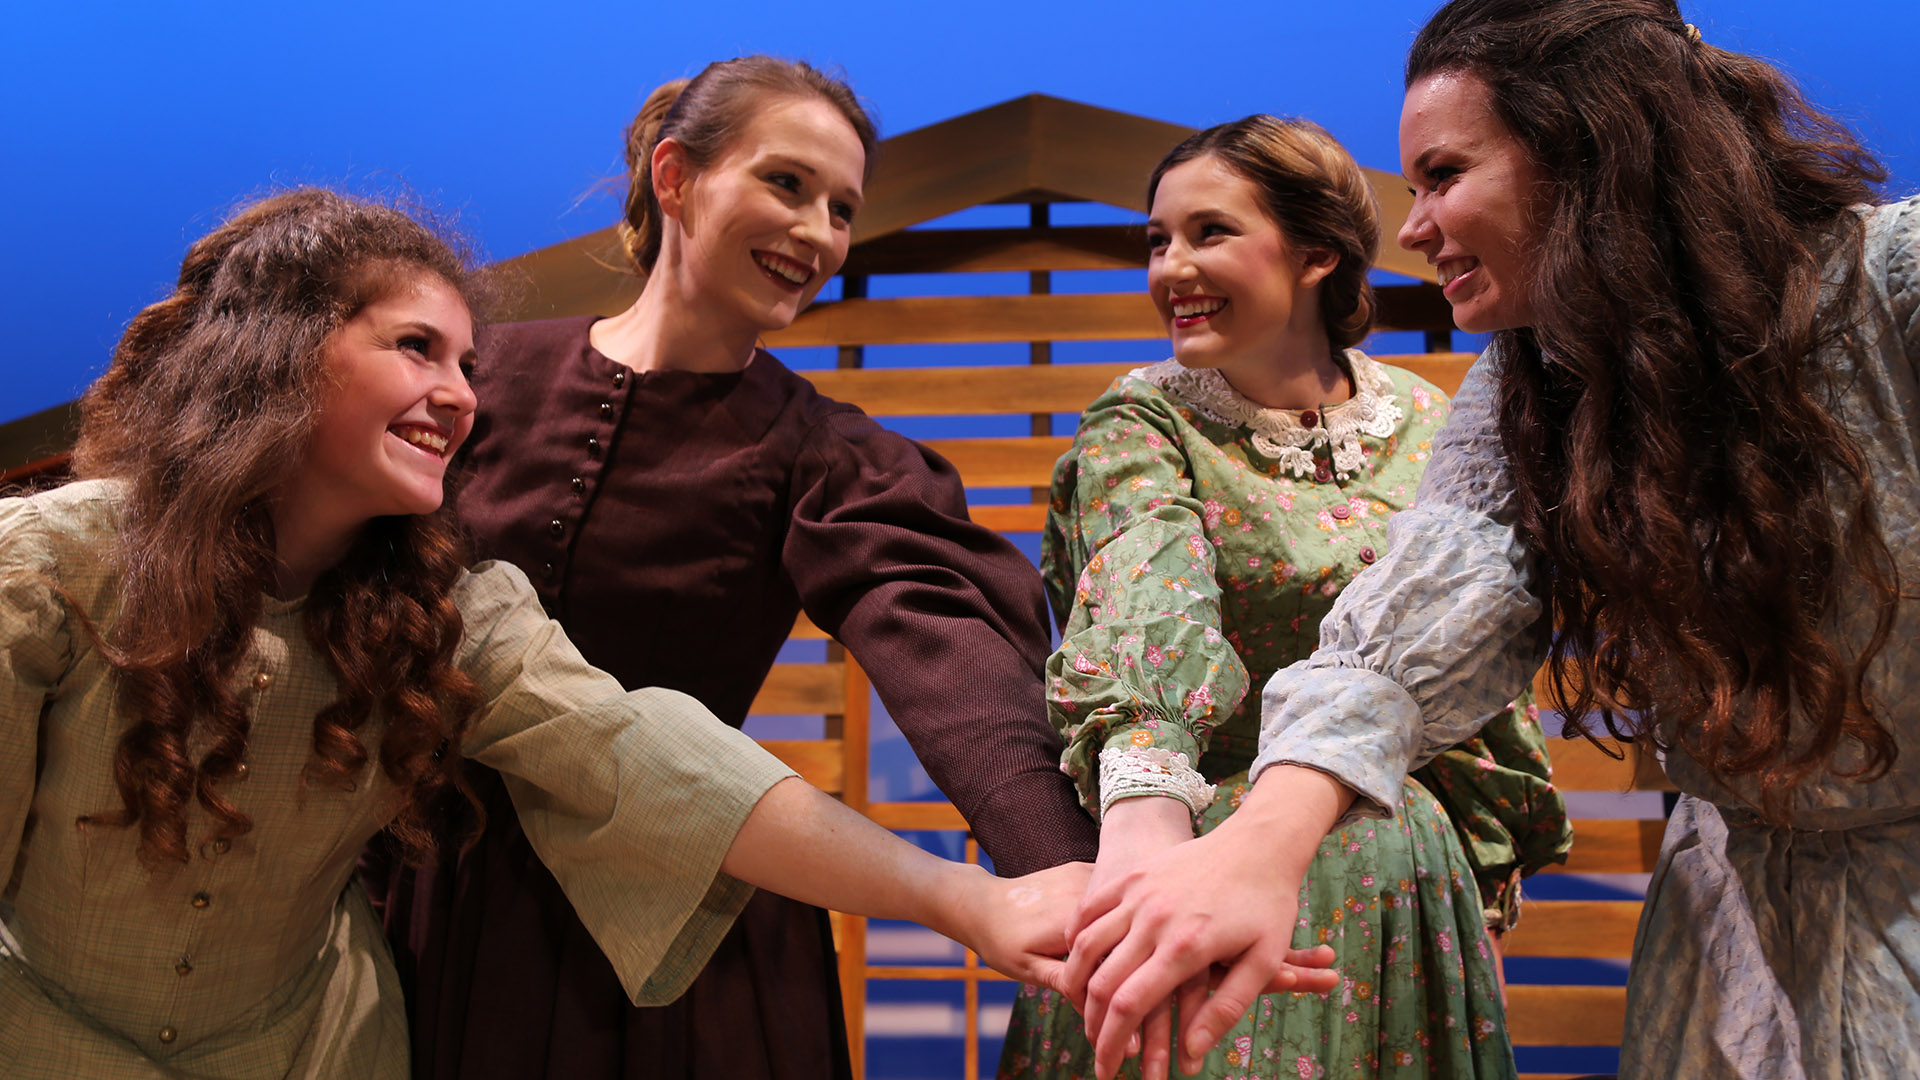 'Uplifting, positive cast' to stage 'Little Women' musical at WT